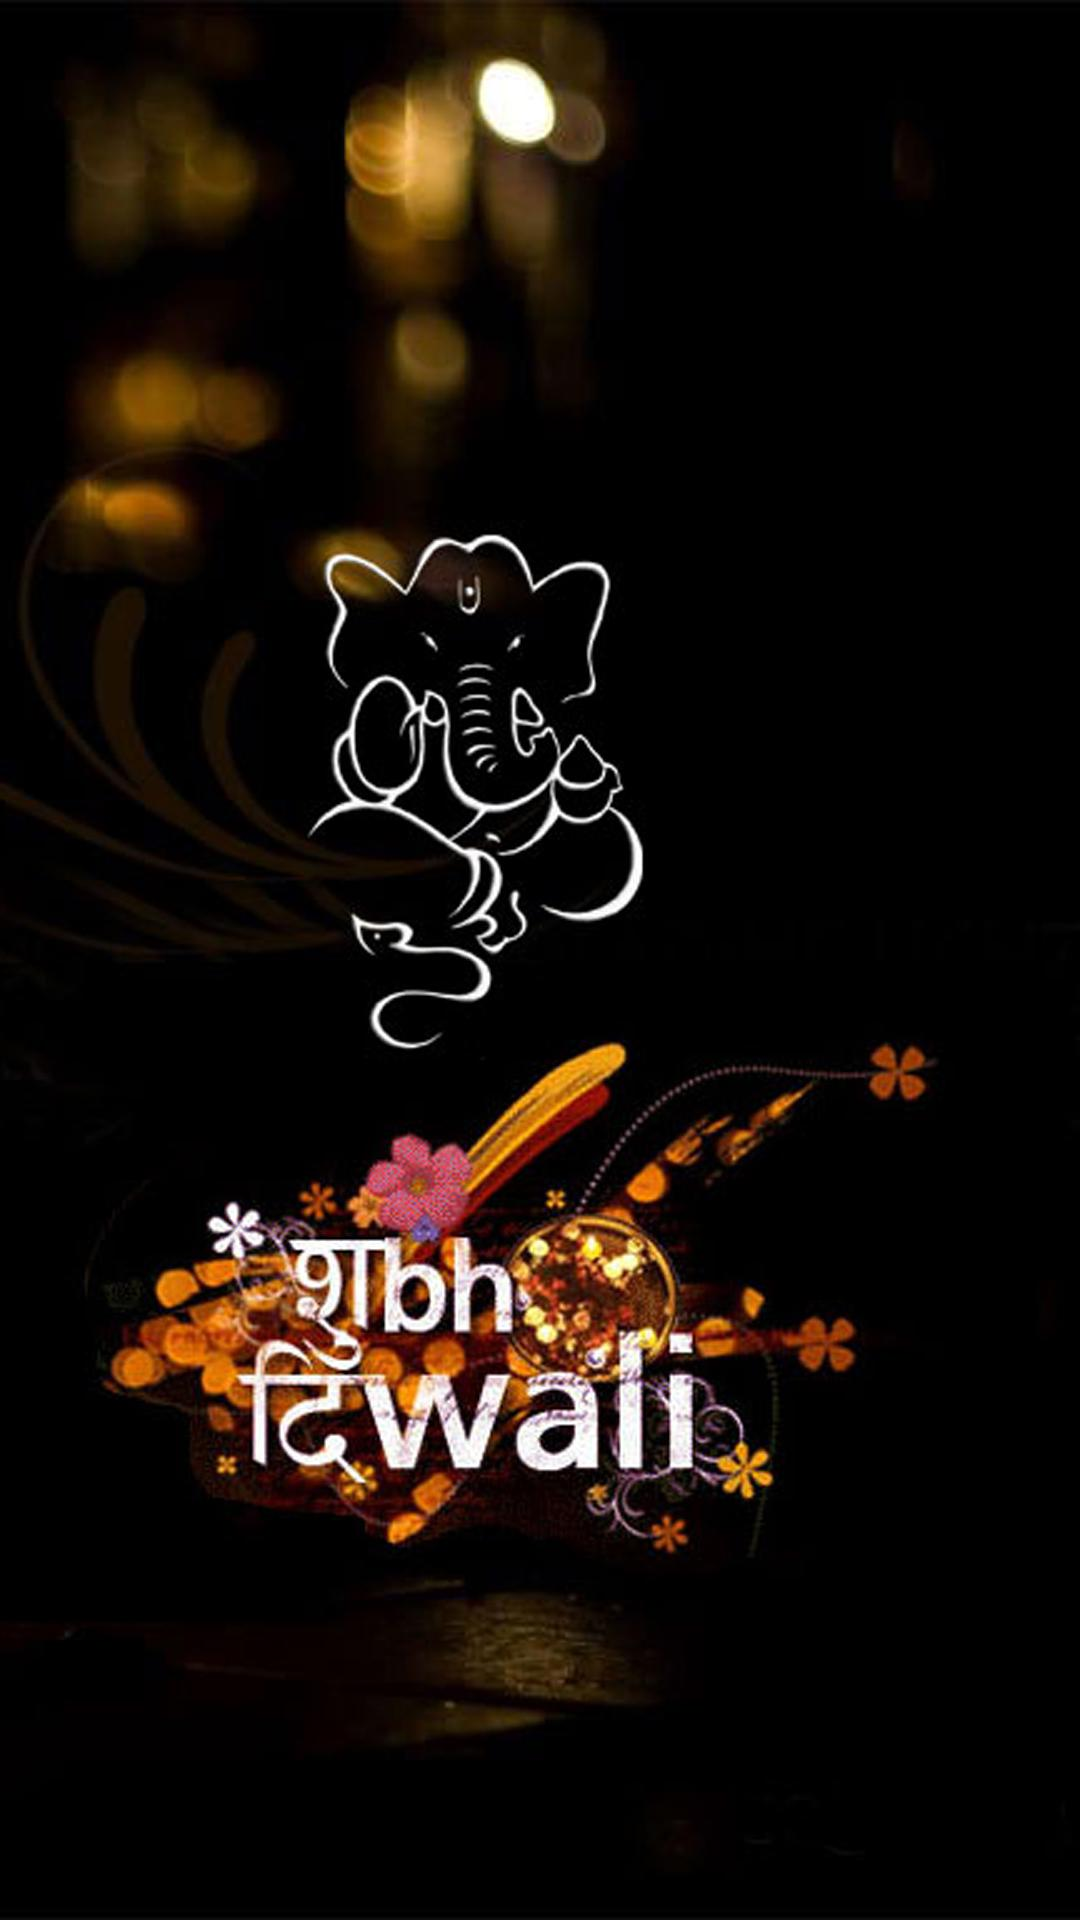 Ganesh Images Hd Wallpapers Download For Mobile